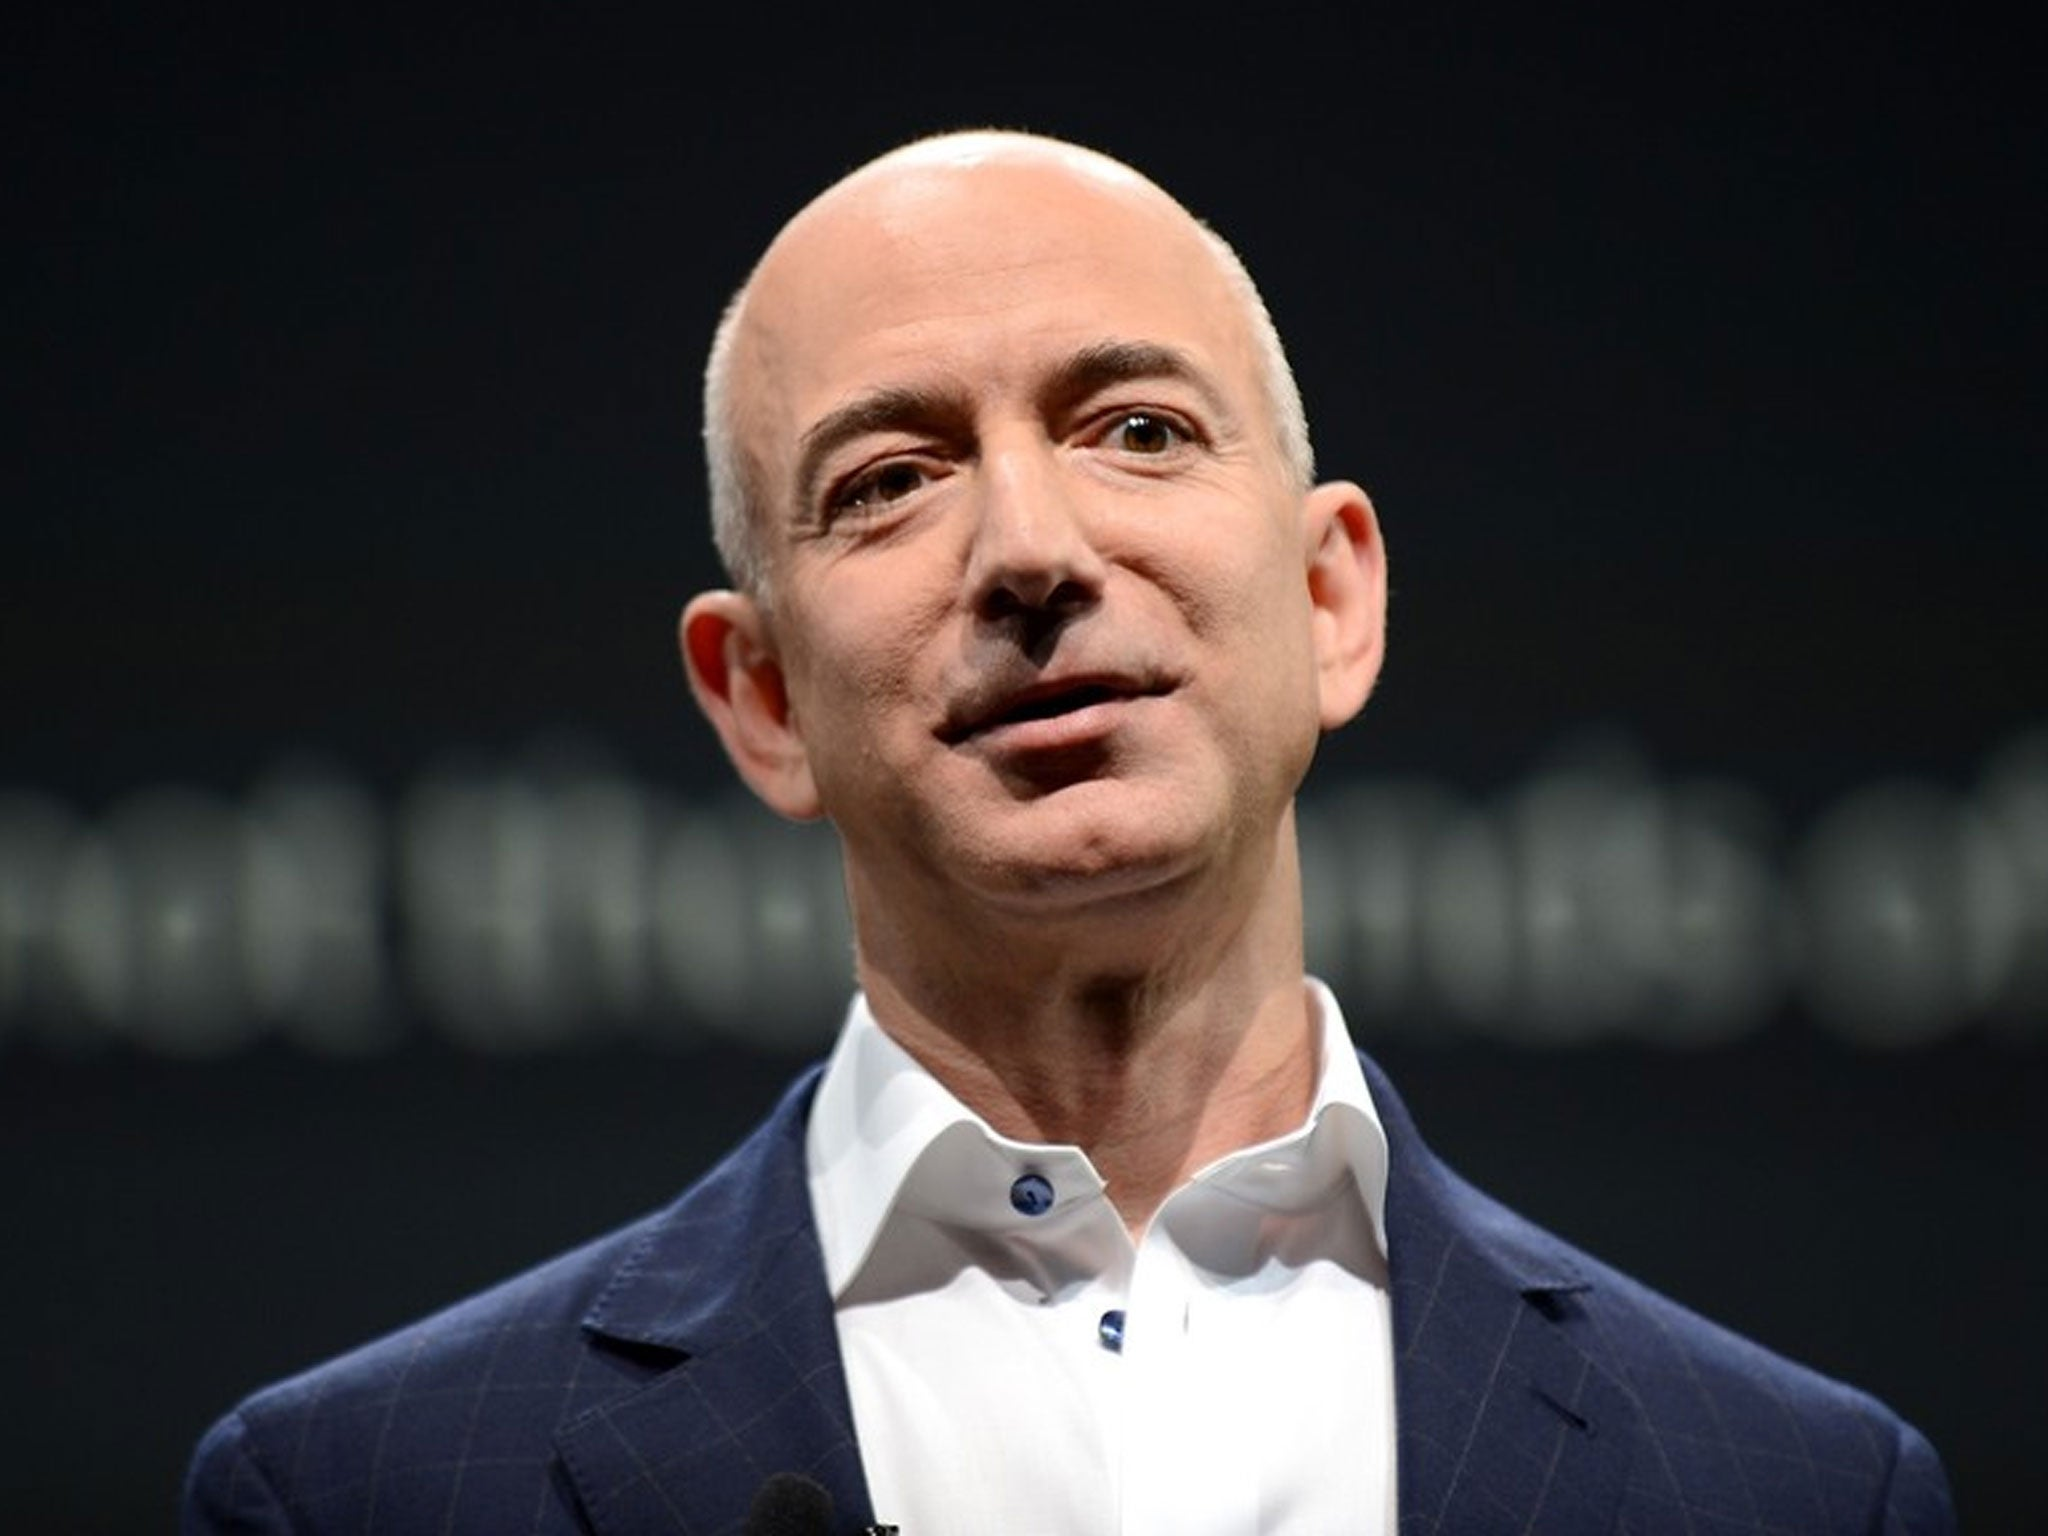 A Day In The Life Of Jeff Bezos Who Wakes Up Without An Alarm